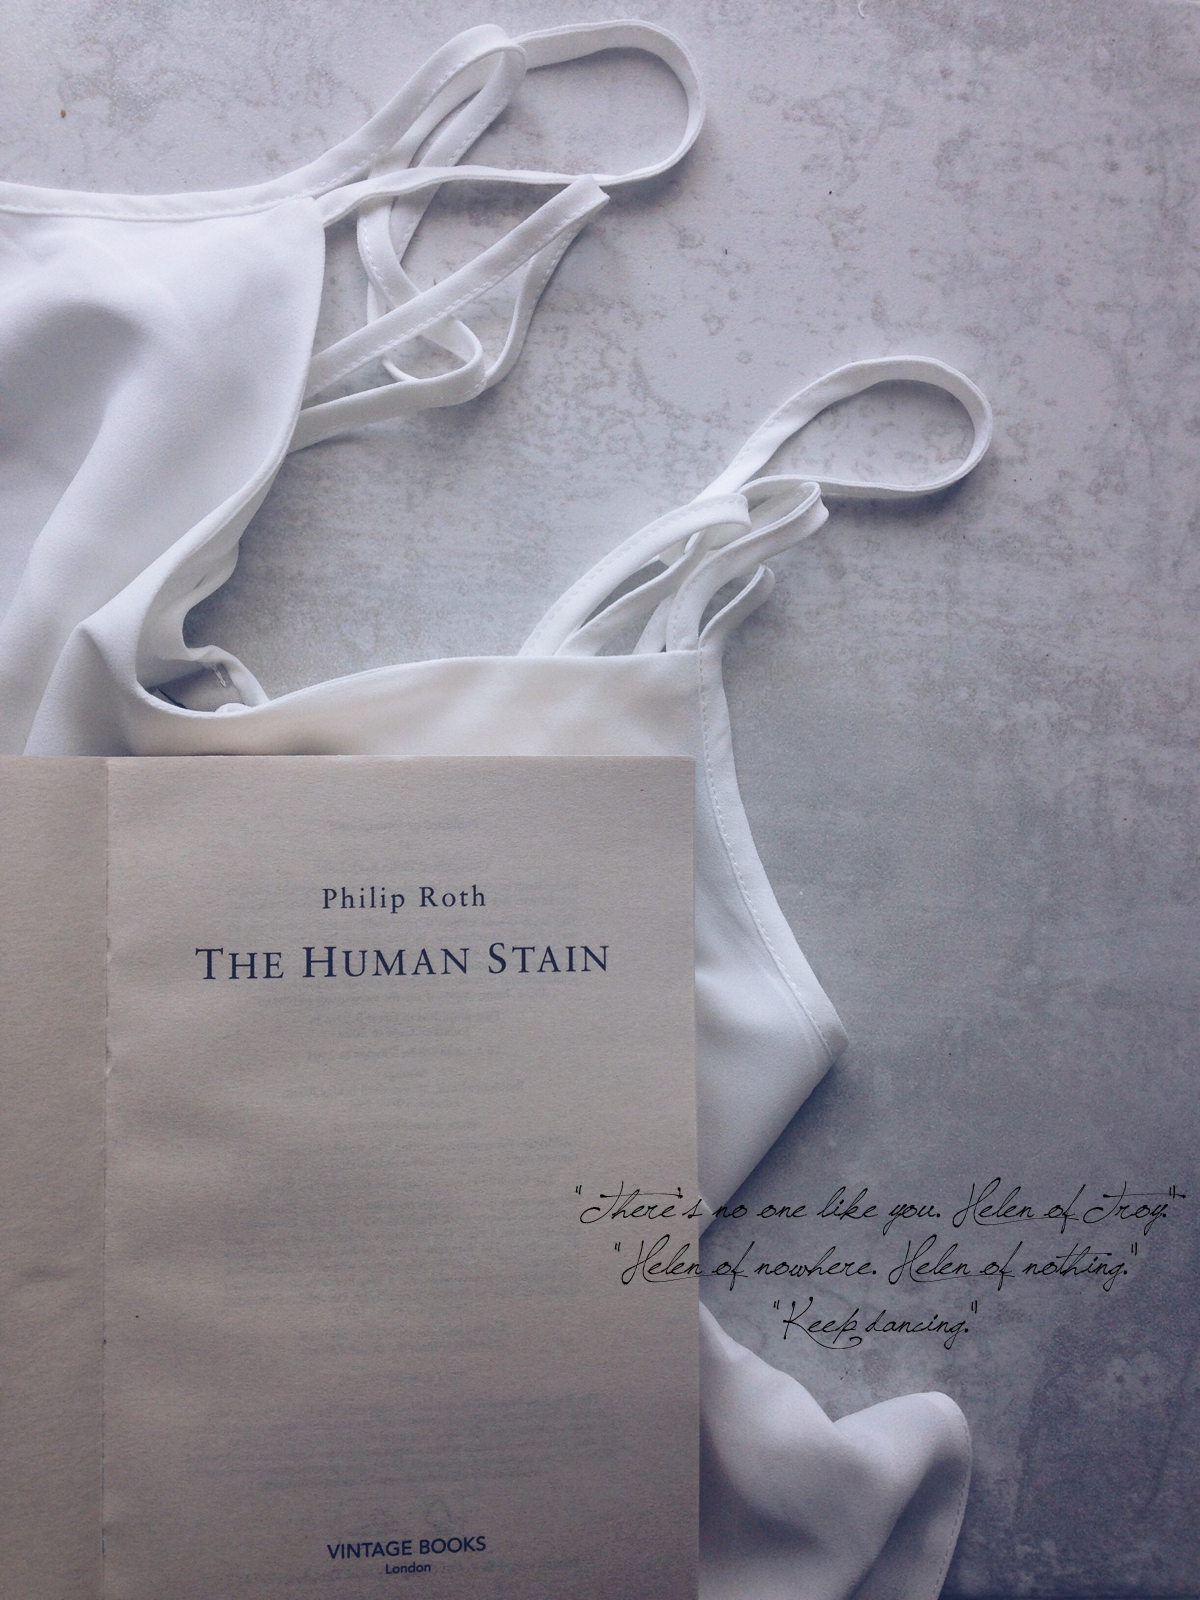 Reading The Human Stain